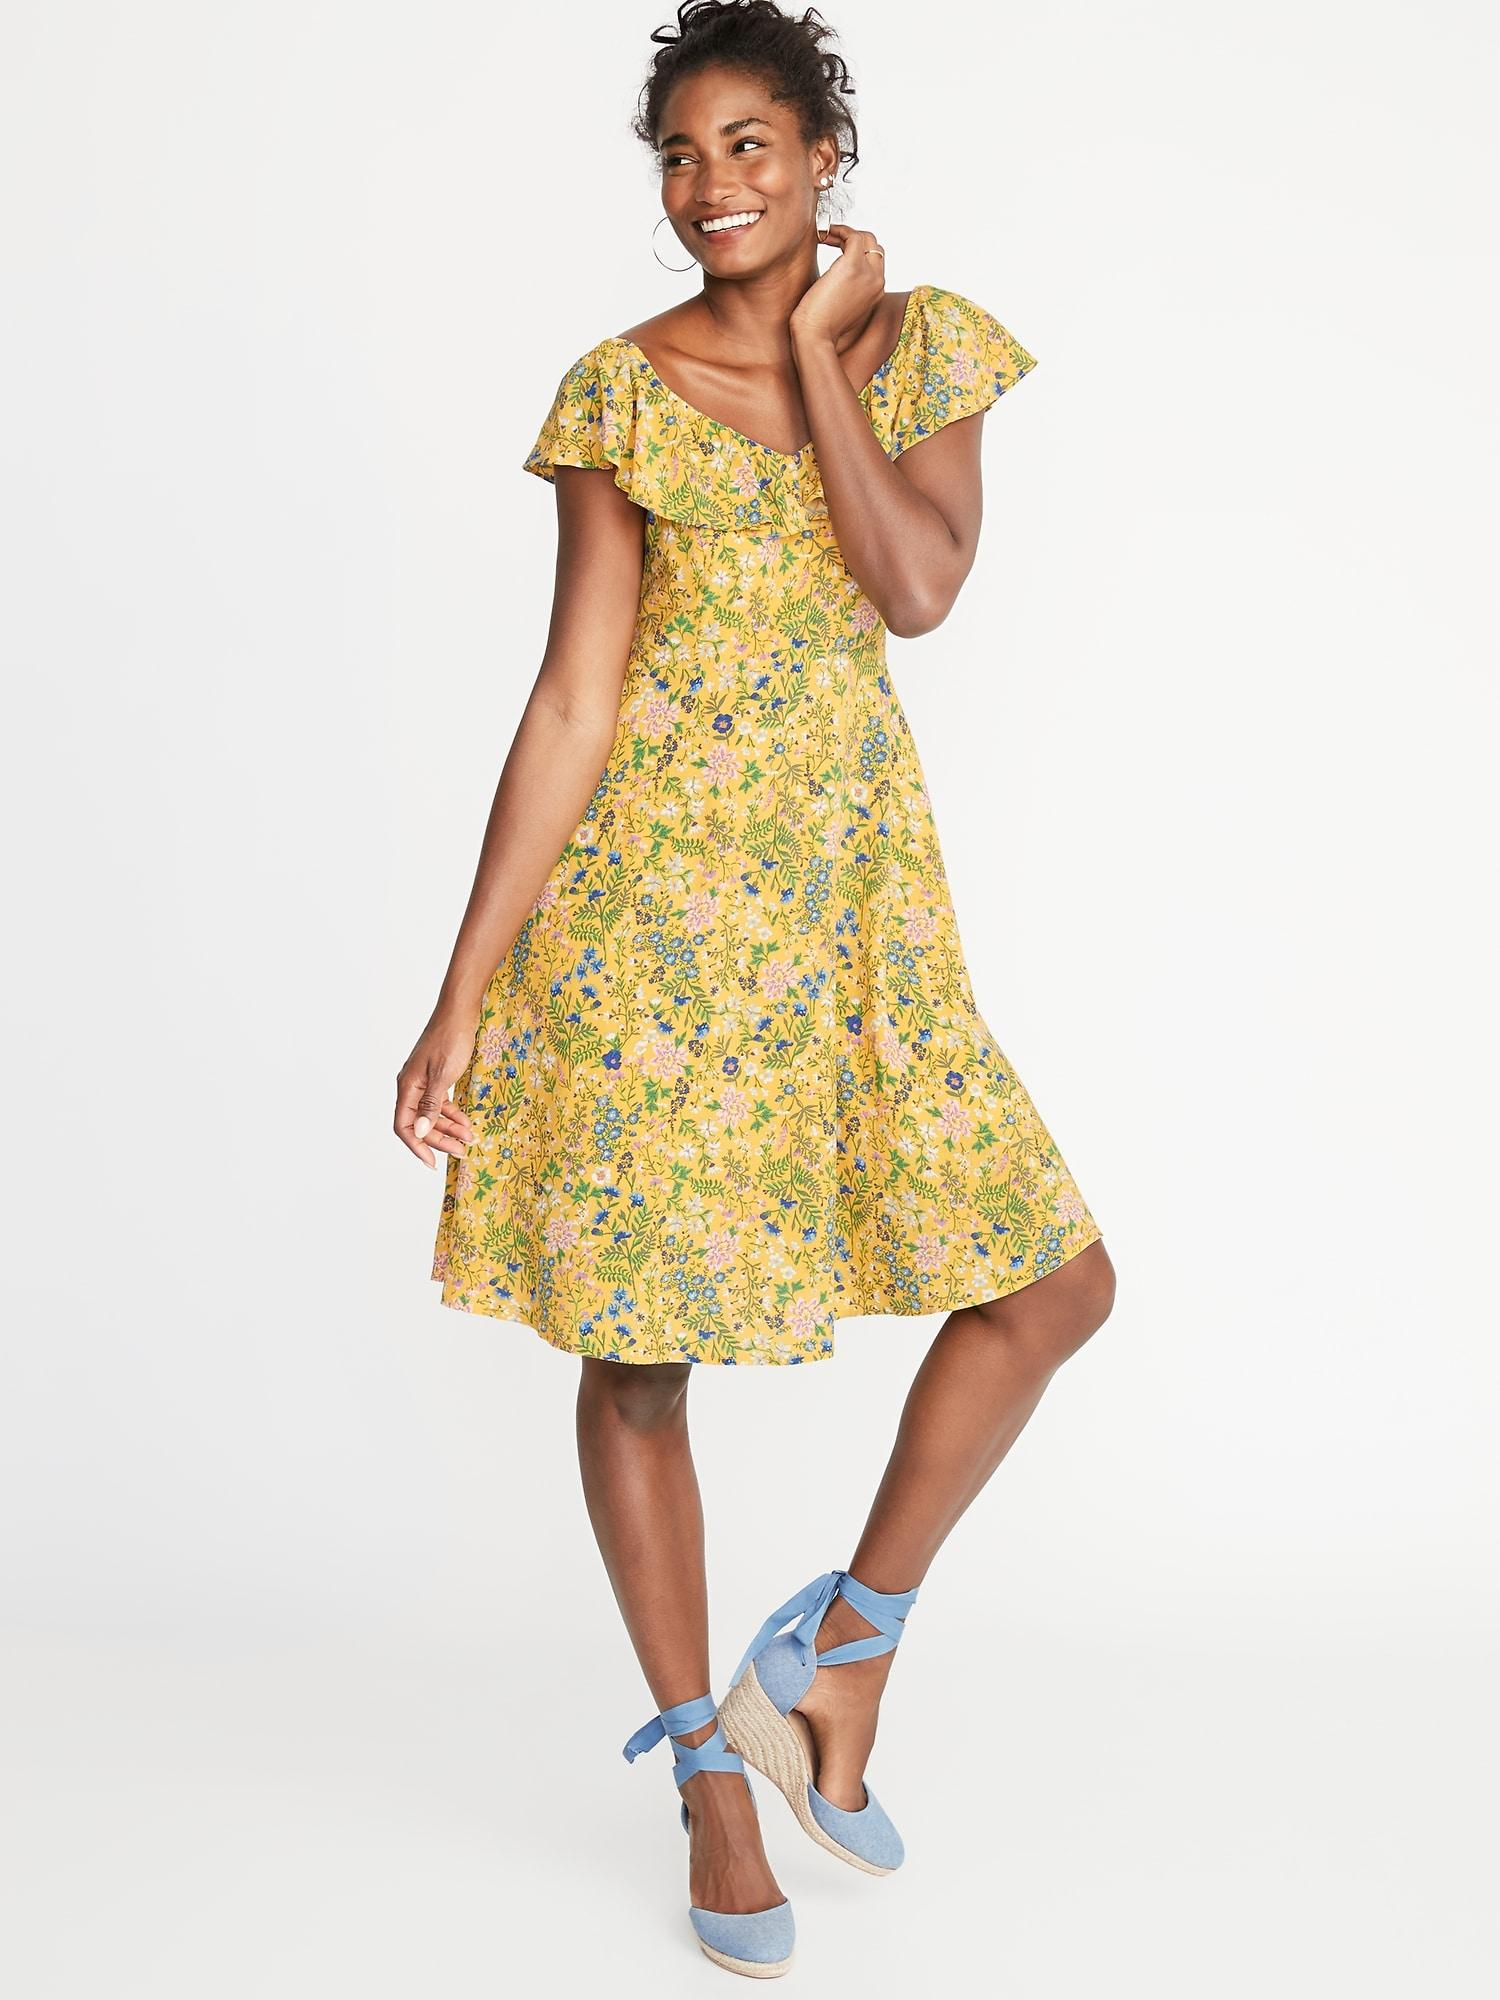 59e12a848b6a Lyst - Old Navy Ruffled Sweetheart-neck Fit   Flare Dress in Yellow